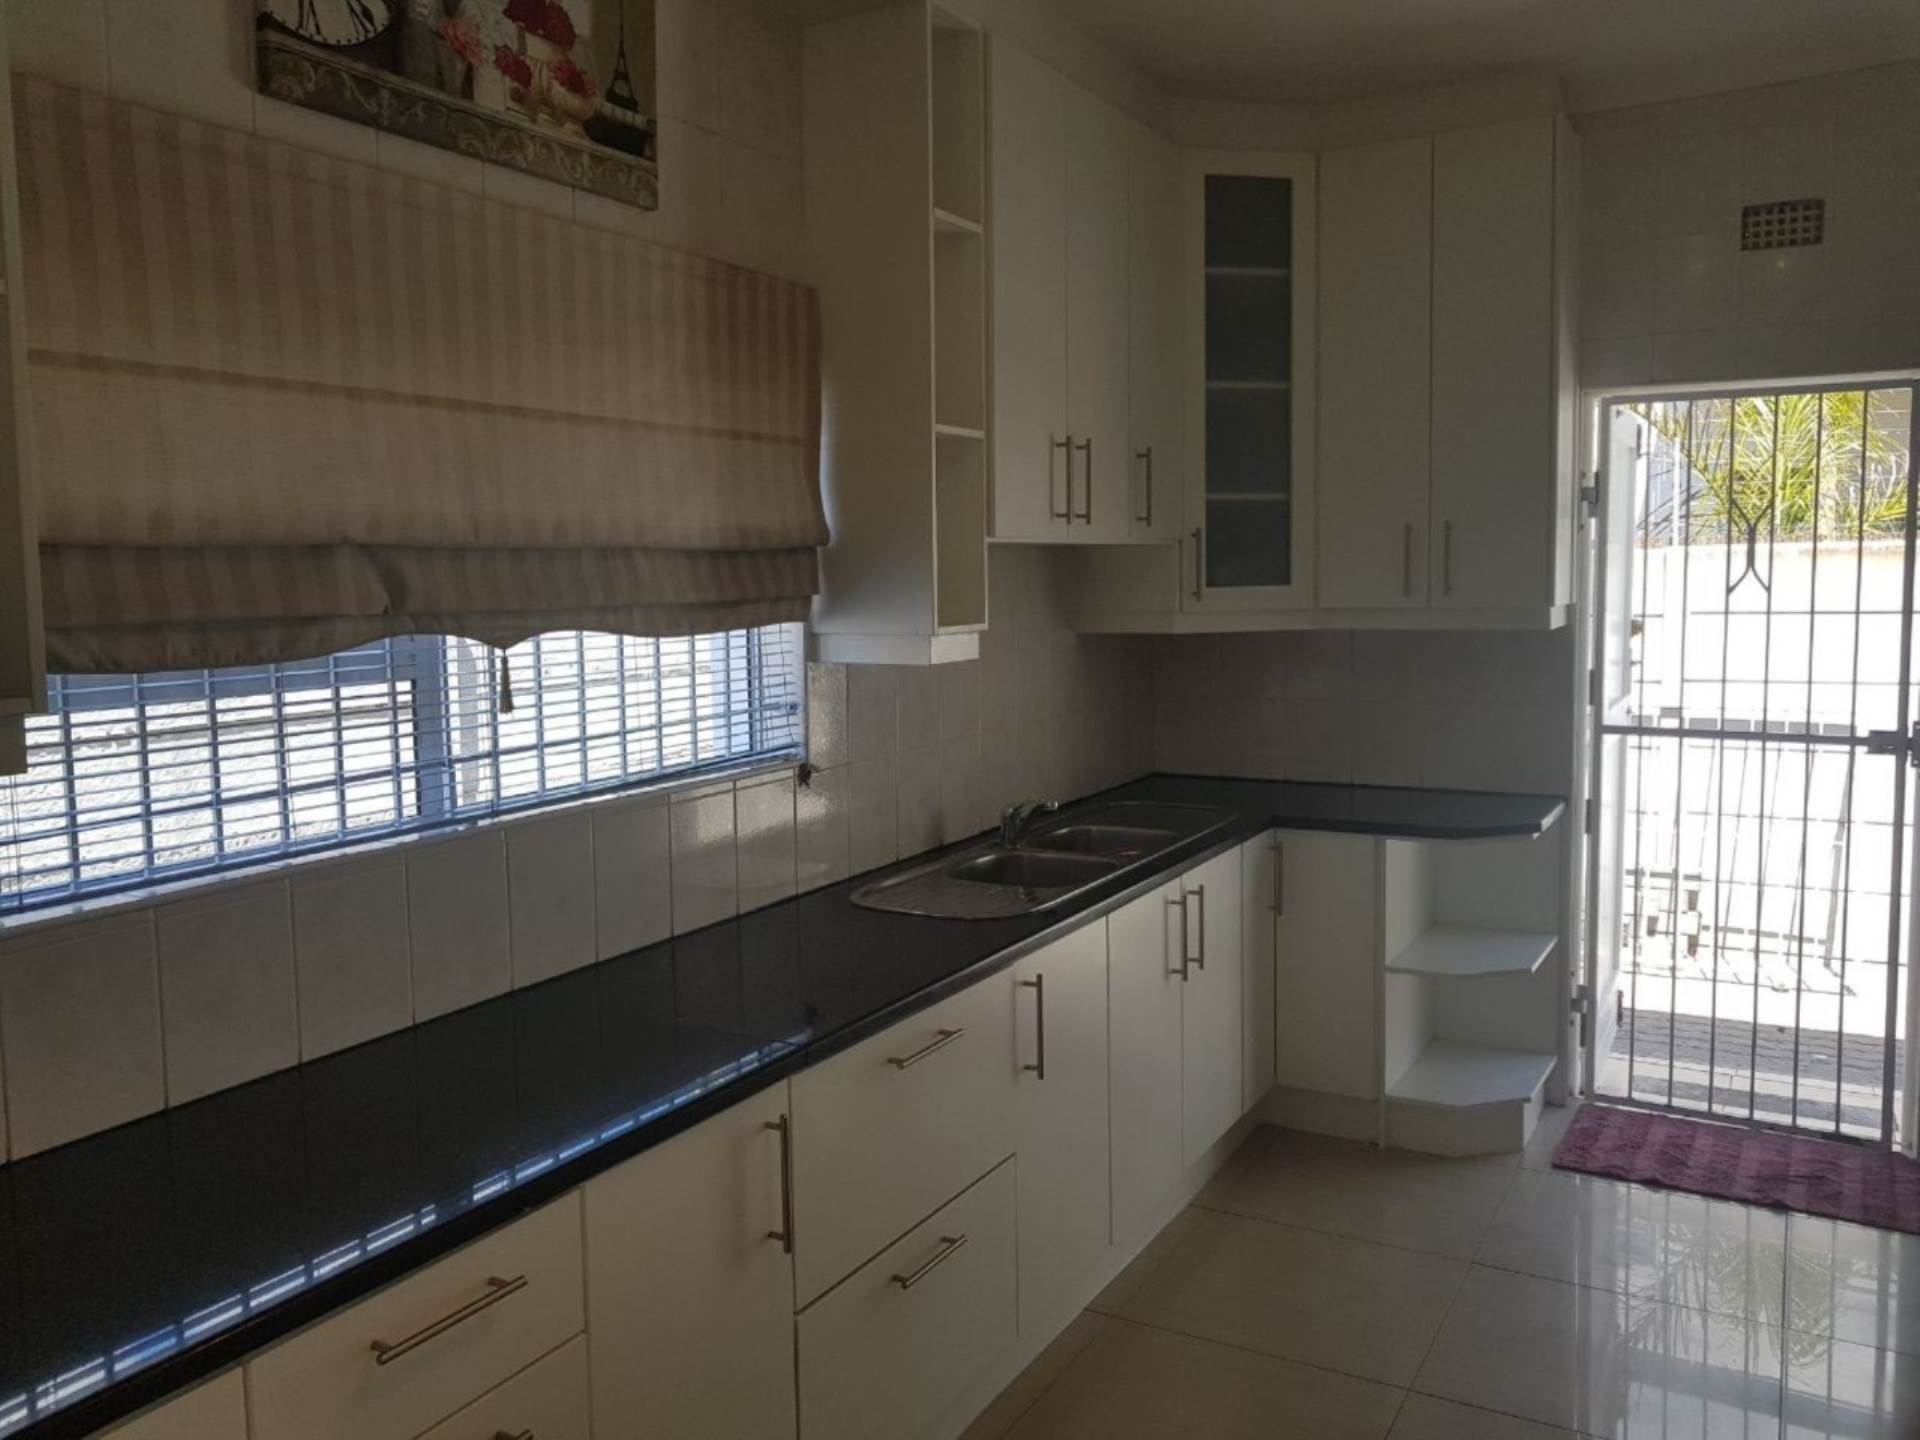 Milnerton Ridge property for sale. Ref No: 13622442. Picture no 6